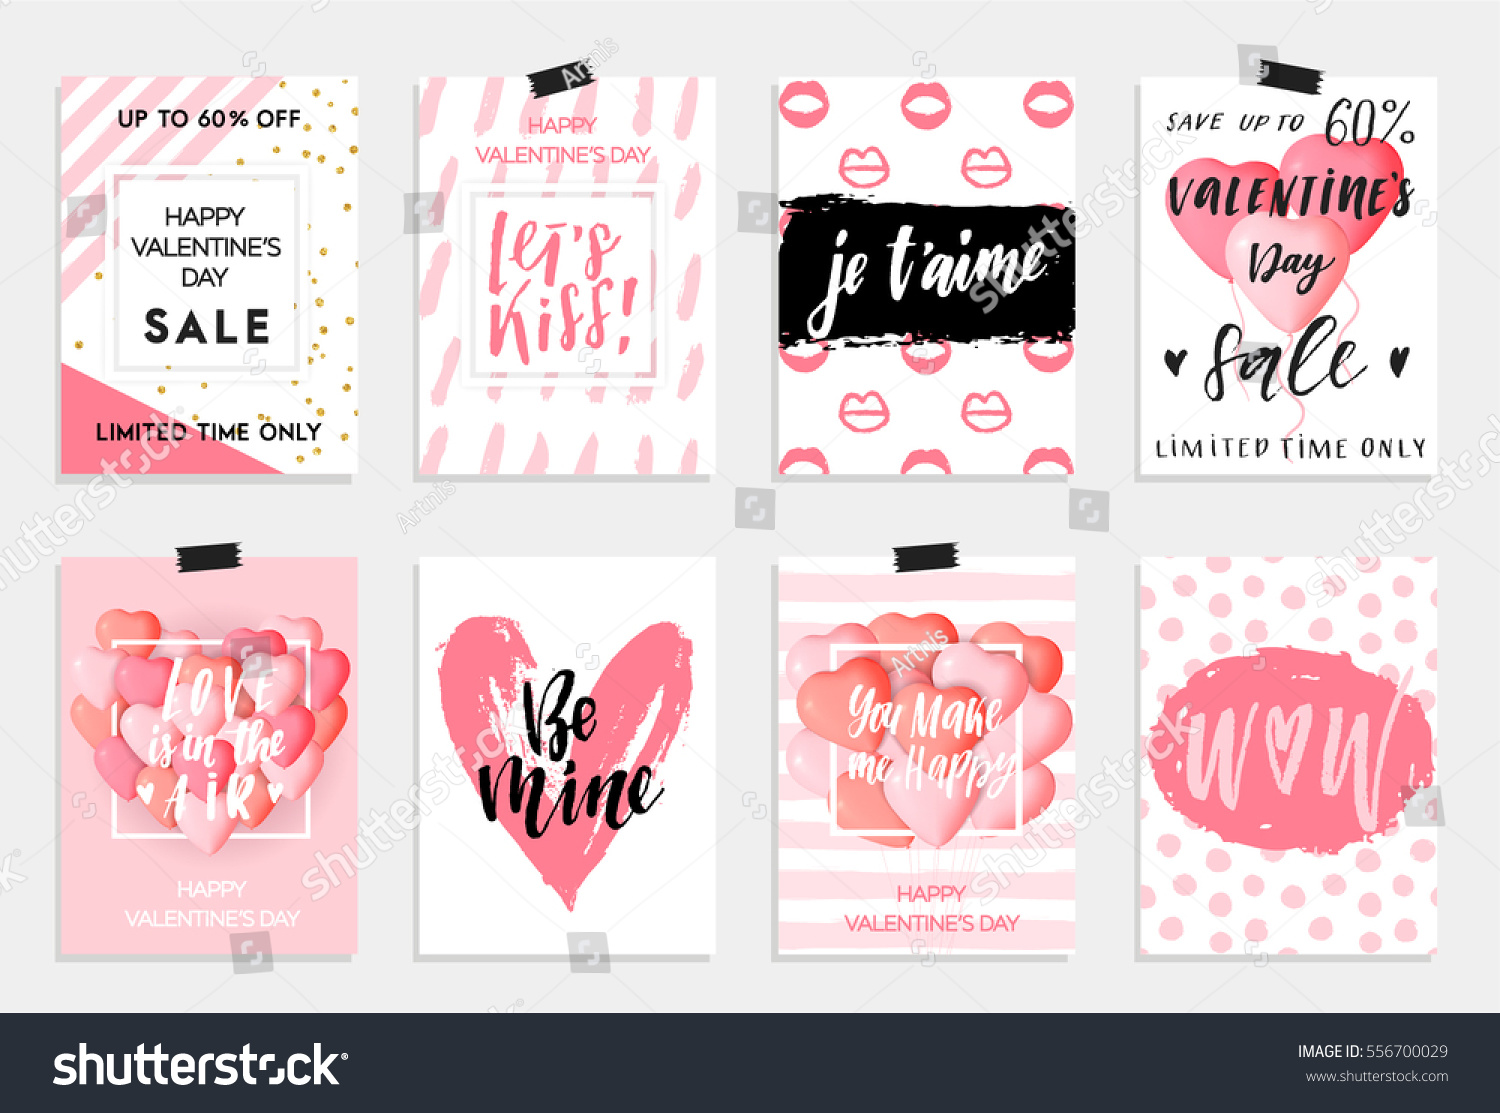 Collection of pink, black, white colored Valentine's day card, sale and other flyer templates with lettering.  Typography poster, card, label, banner design set. Vector illustration EPS10 #556700029